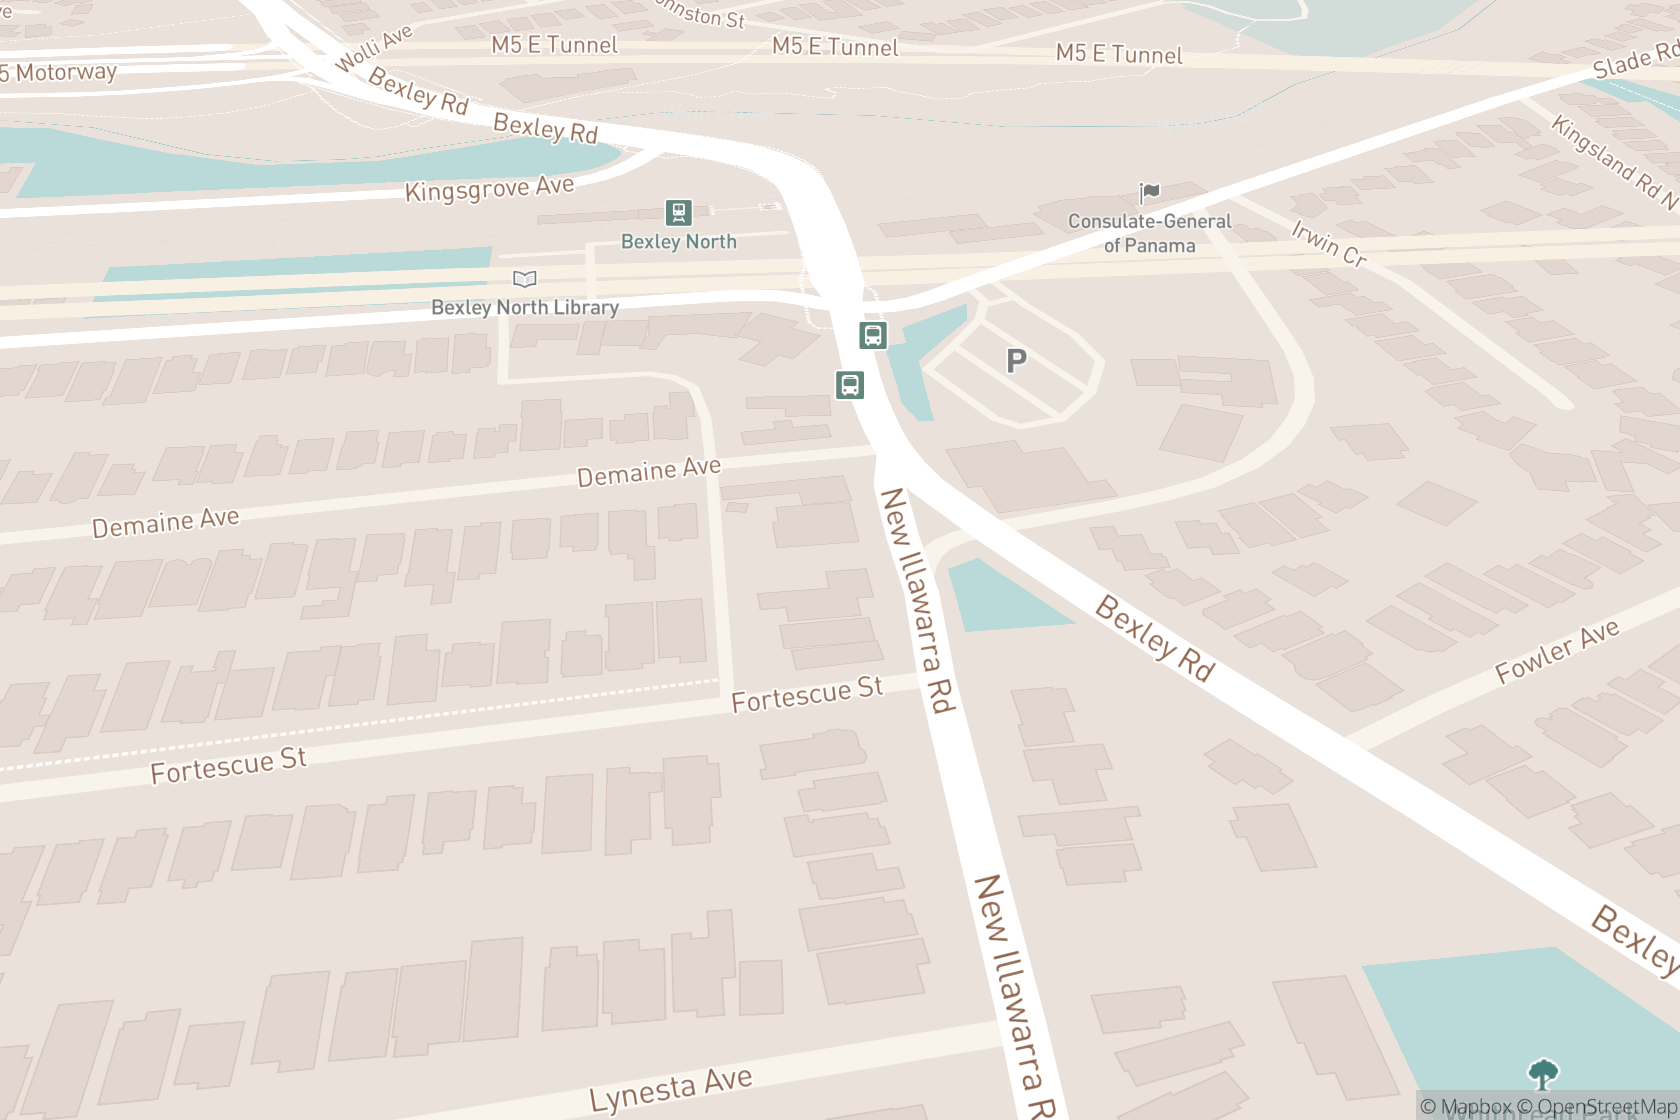 Chiron Chiropractic and Sports Injury Management map location